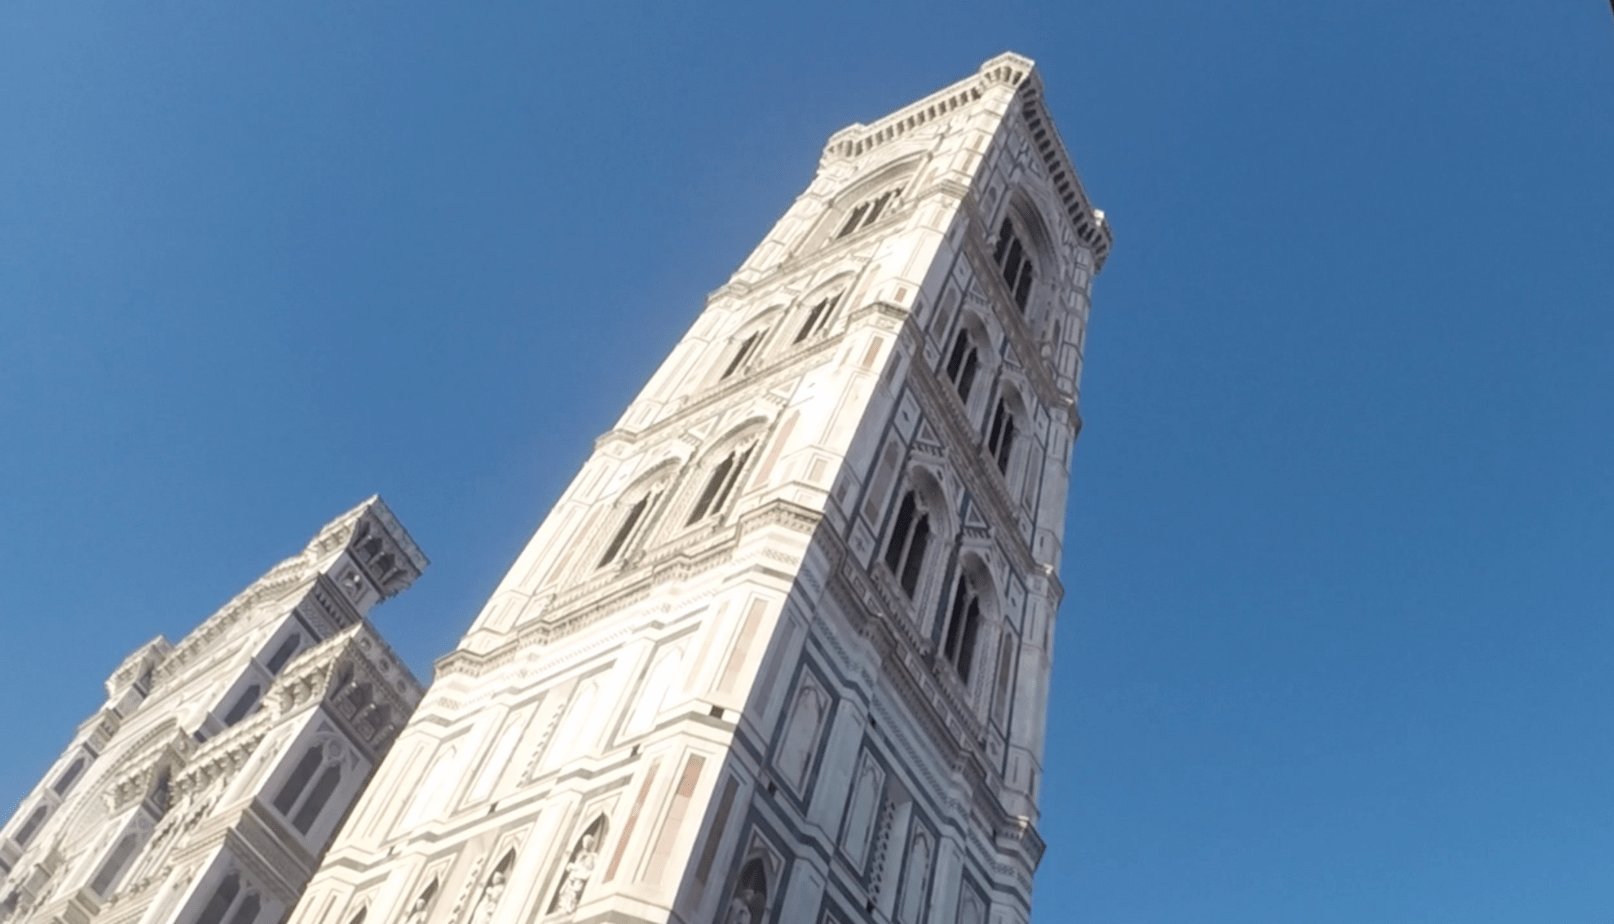 Giotto's Bell tower Florence